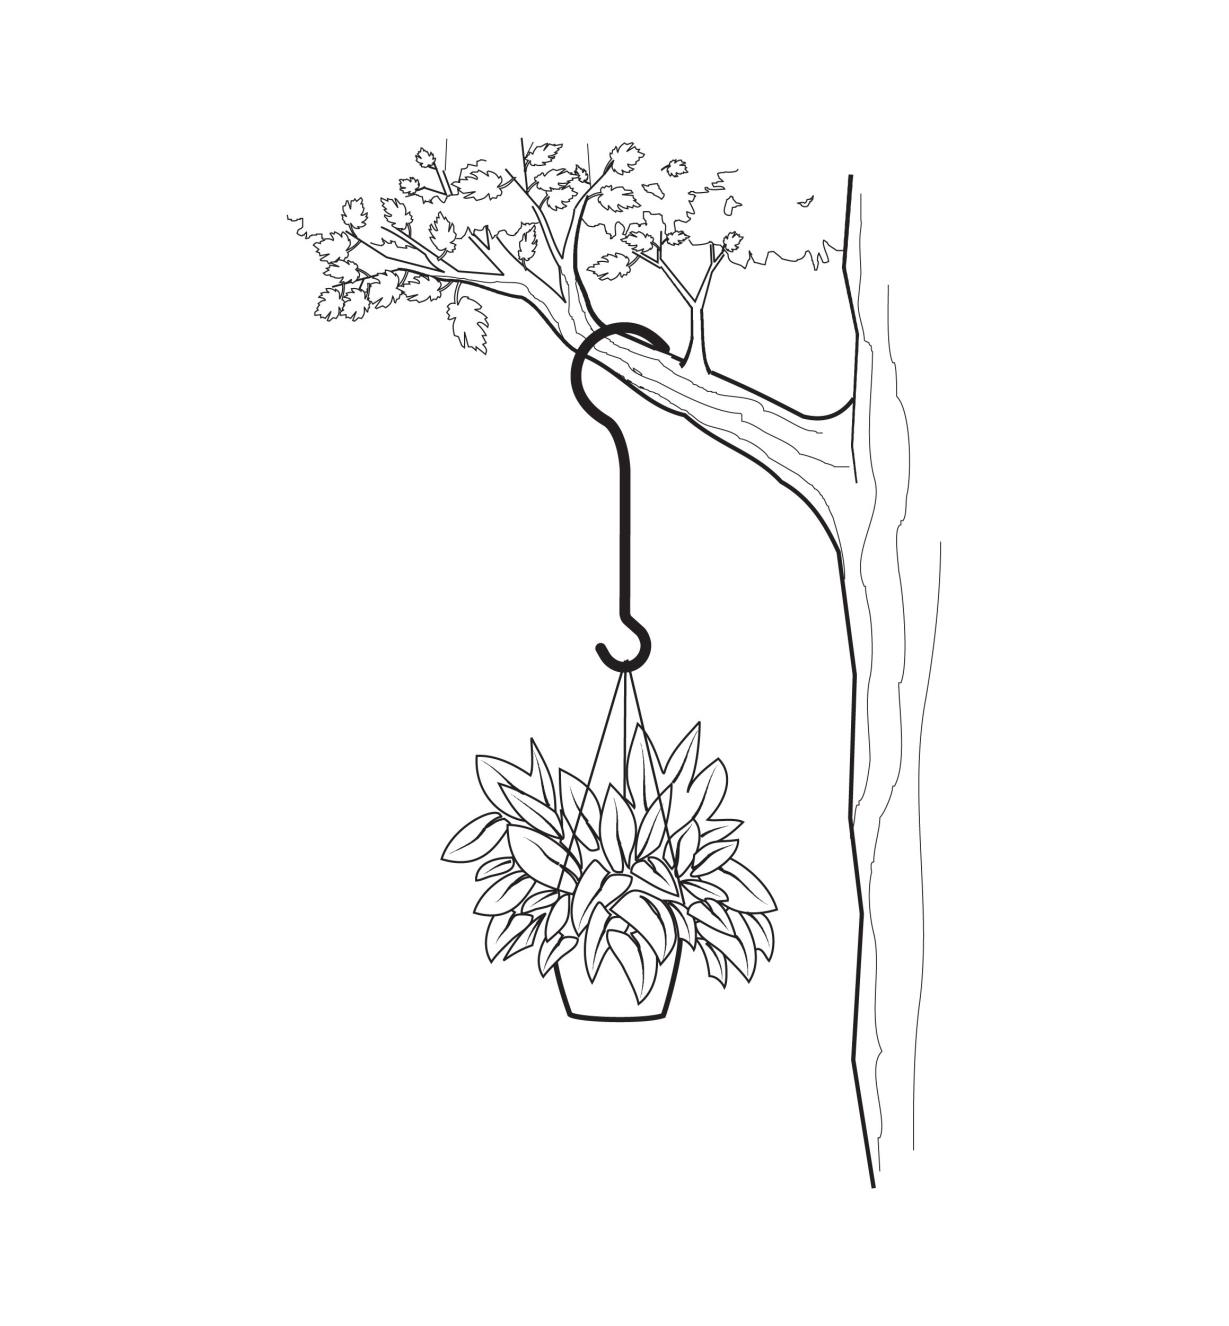 Illustration of an all-purpose garden hook hanging a planter from a tree